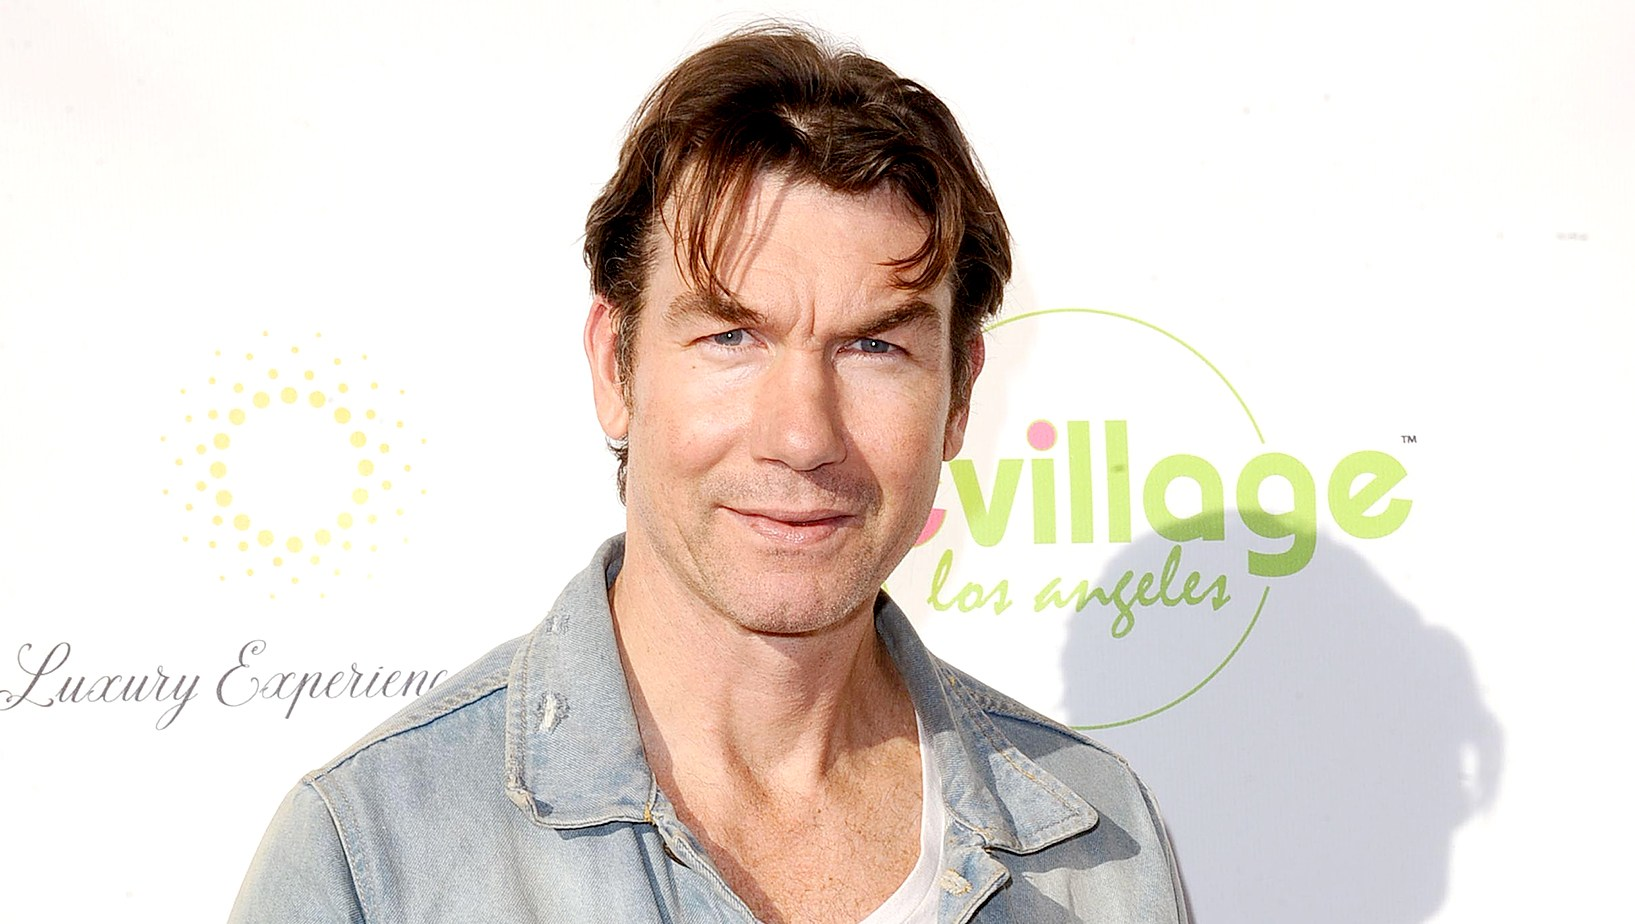 Jerry-O'Connell-WeHoliday-Event-Benefitting-the-Los-Angeles-Fire-Department-Foundation